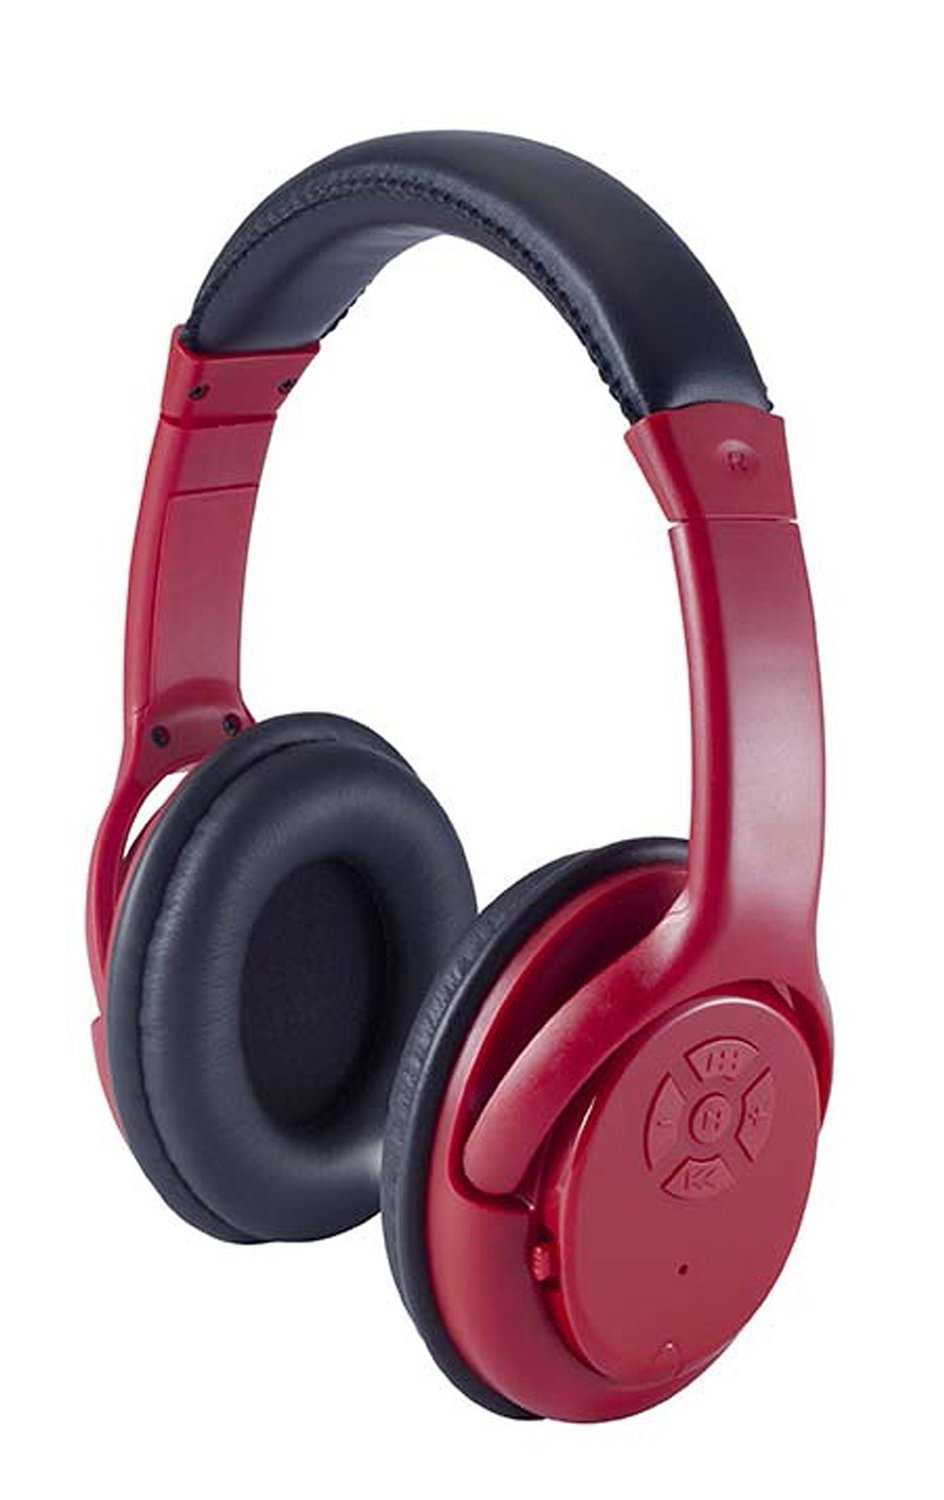 Craig CBH508 Bluetooth Wireless Over-The-Ear Headphones Red